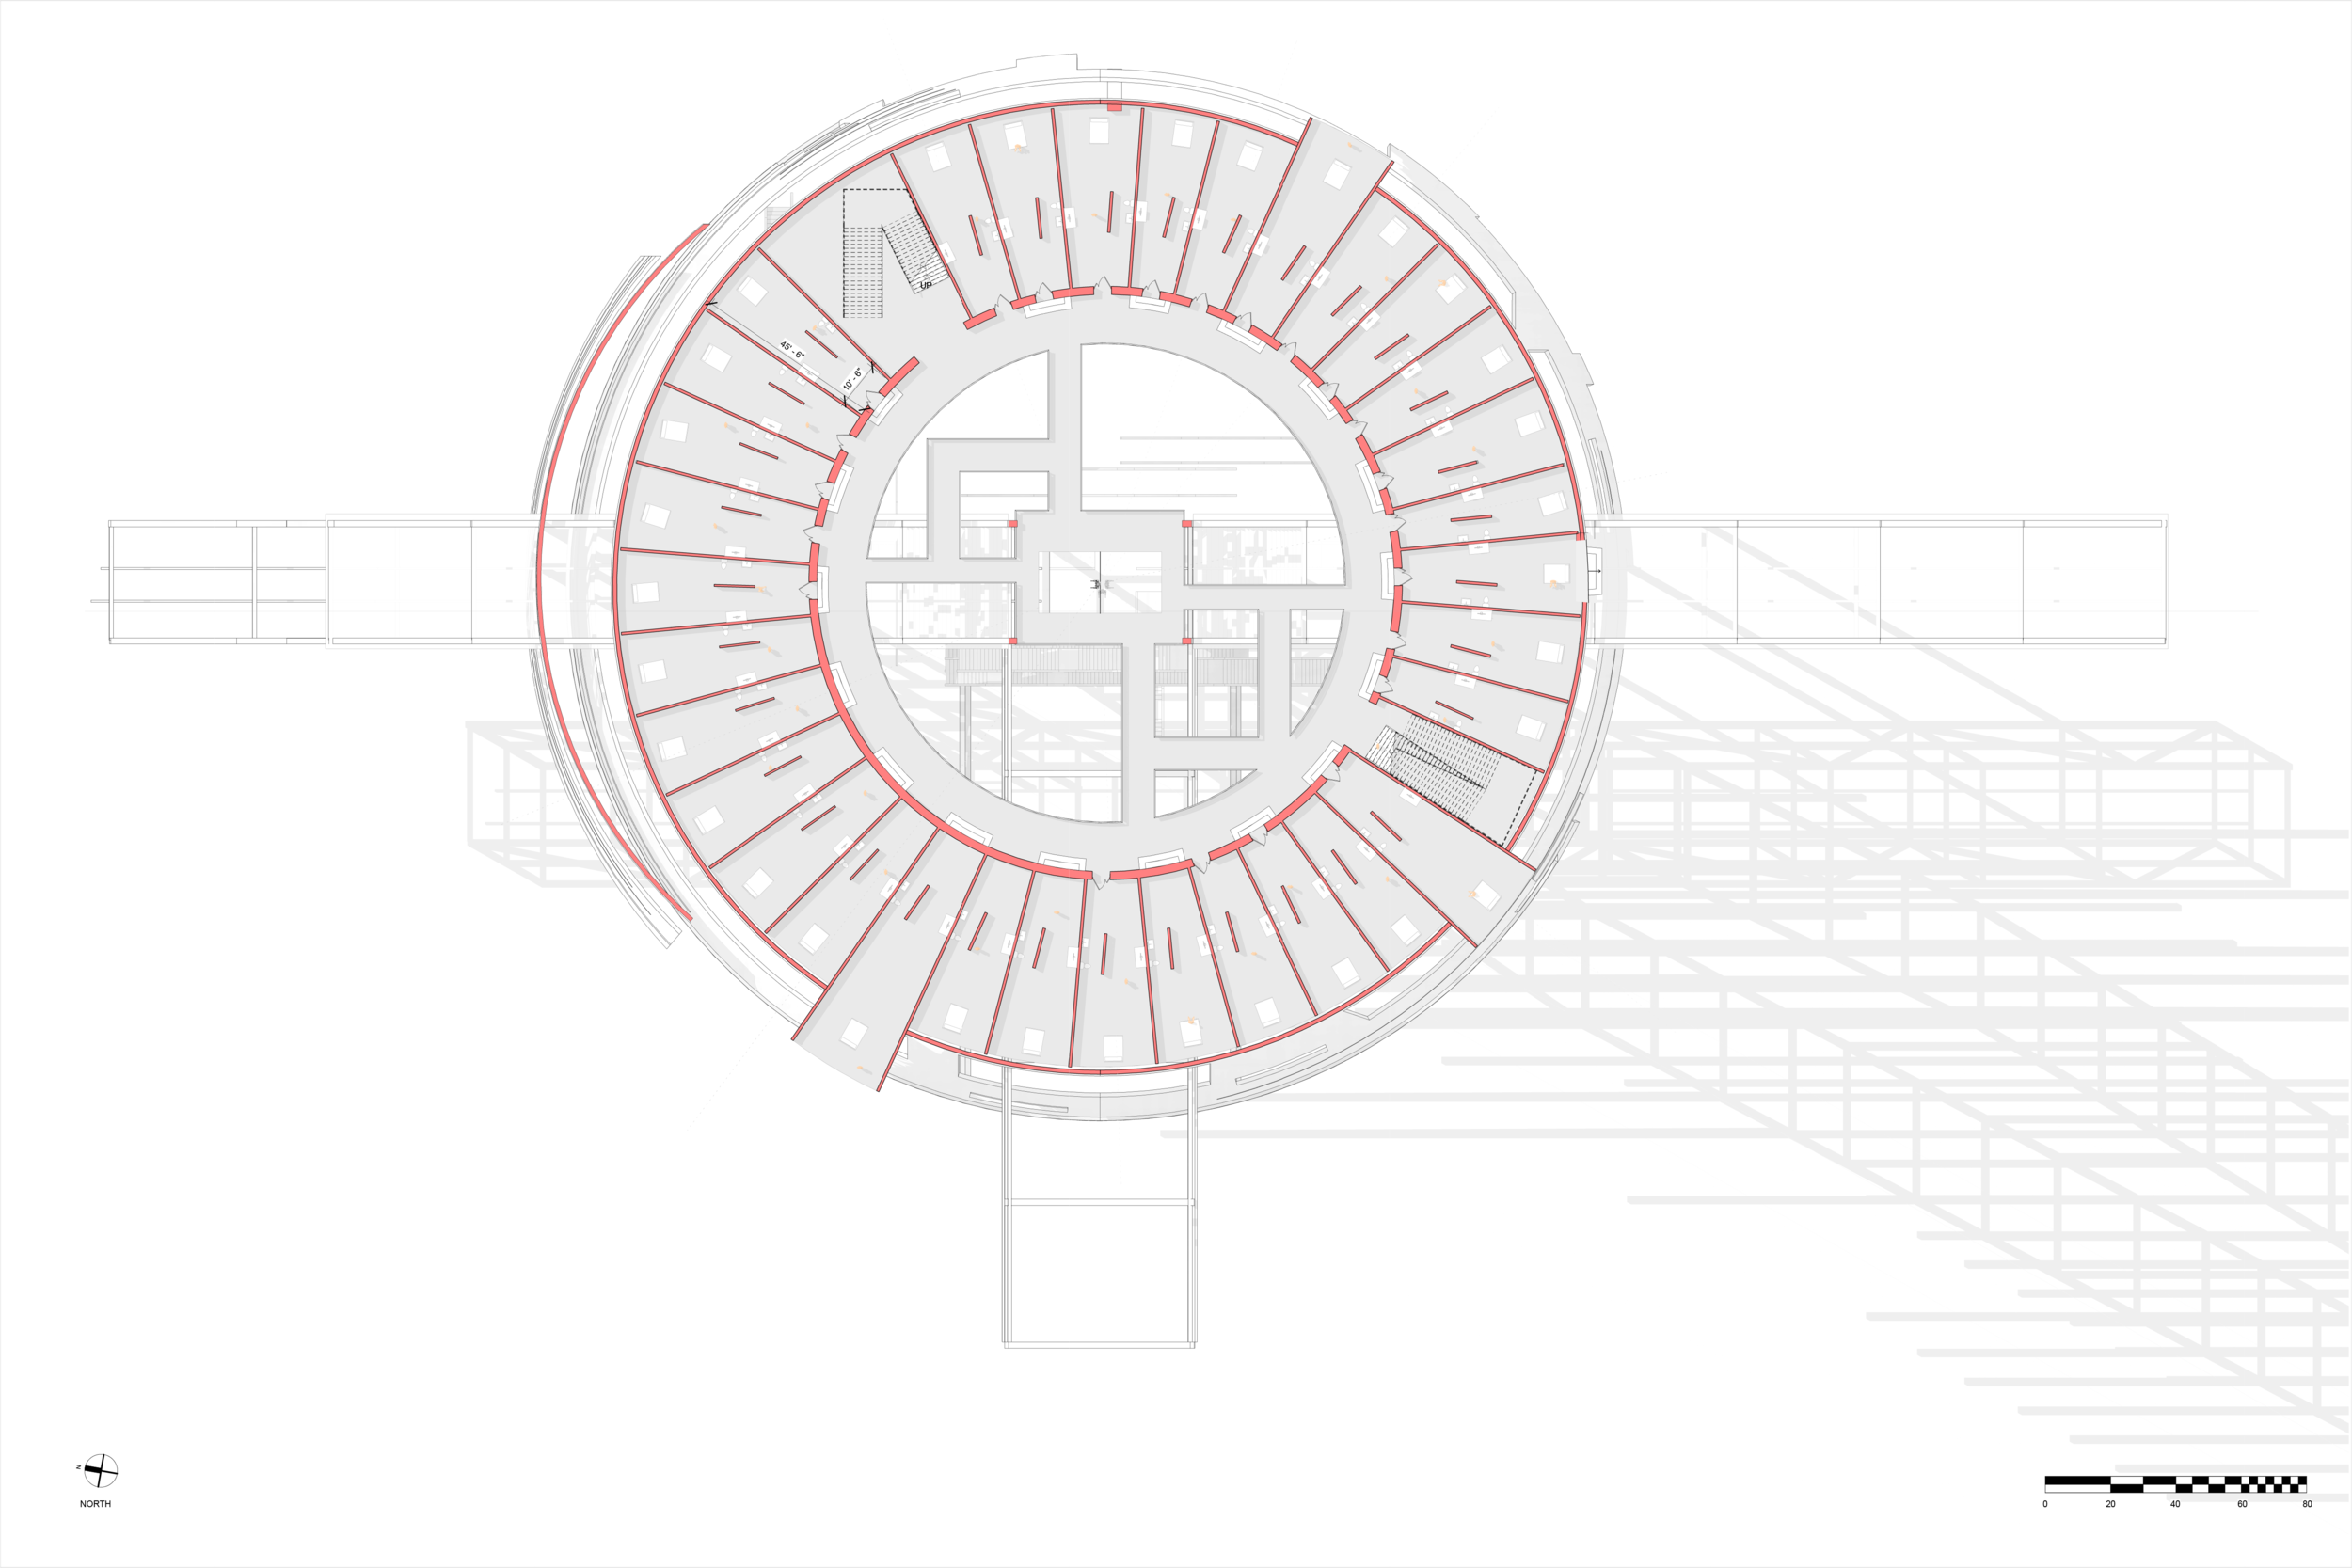 """PANOPTICON FLOOR PLAN - SCALE : 1/16"""" = 1' - 0""""  Circular prison with cells arranged around a central well, from which prisoners could at all times be observed."""